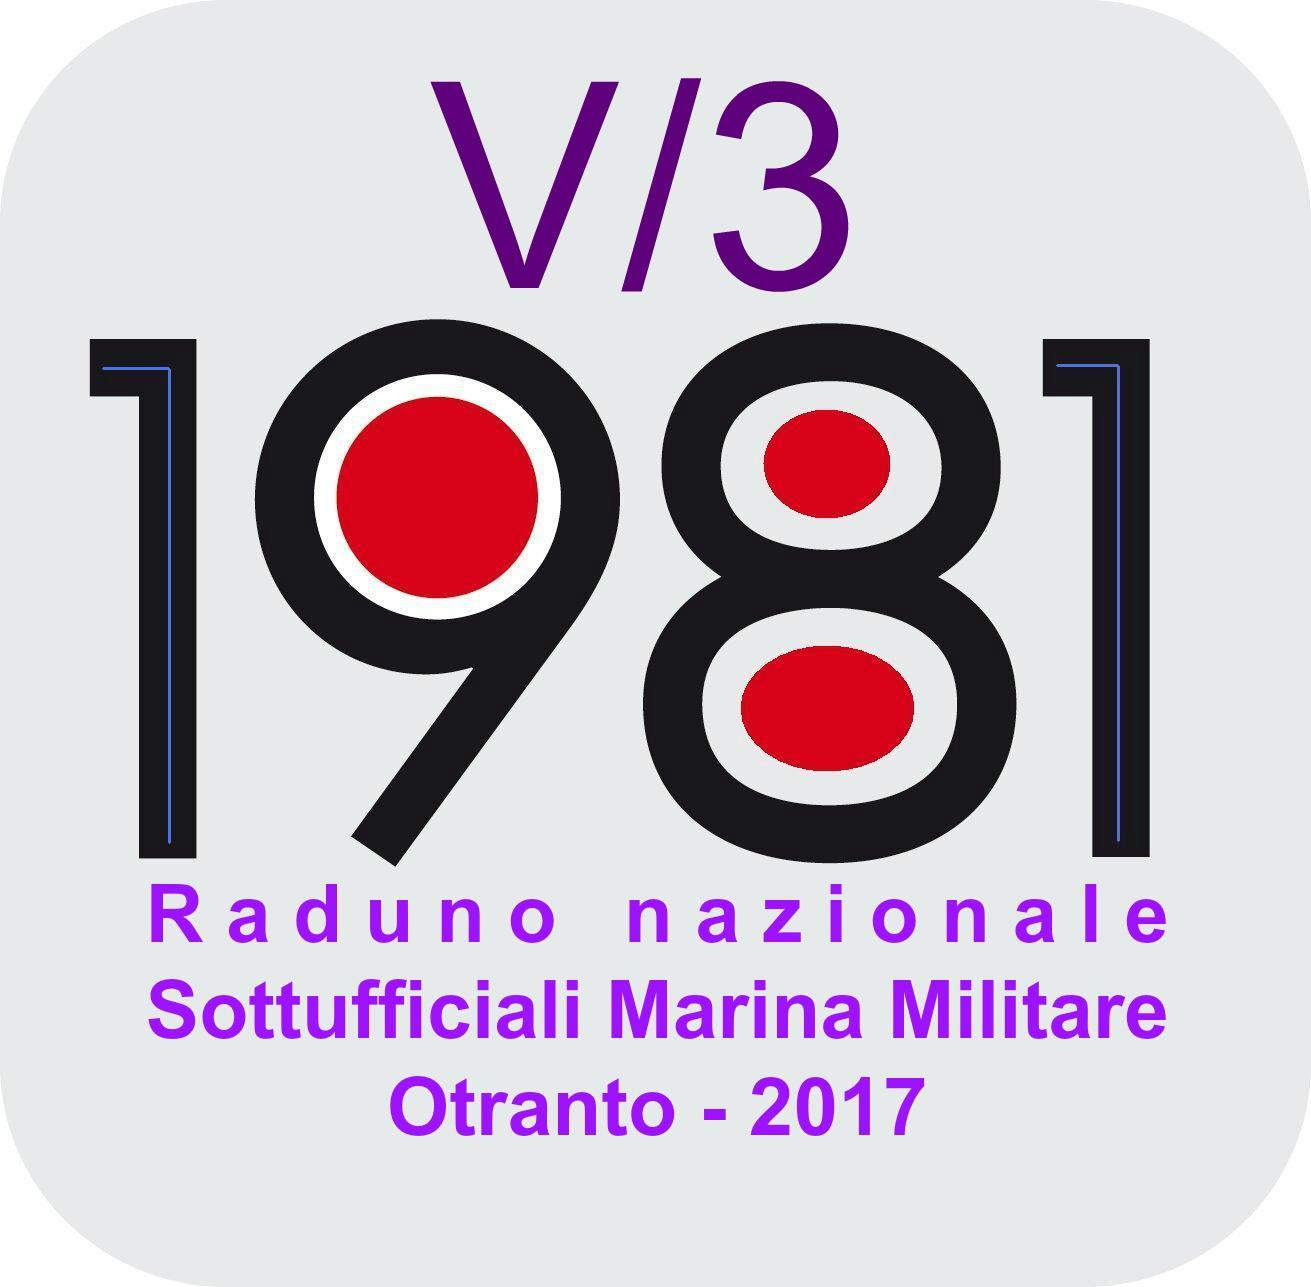 Raduno Sottufficiali M.M. Corso V3/81. Aggiornamenti.